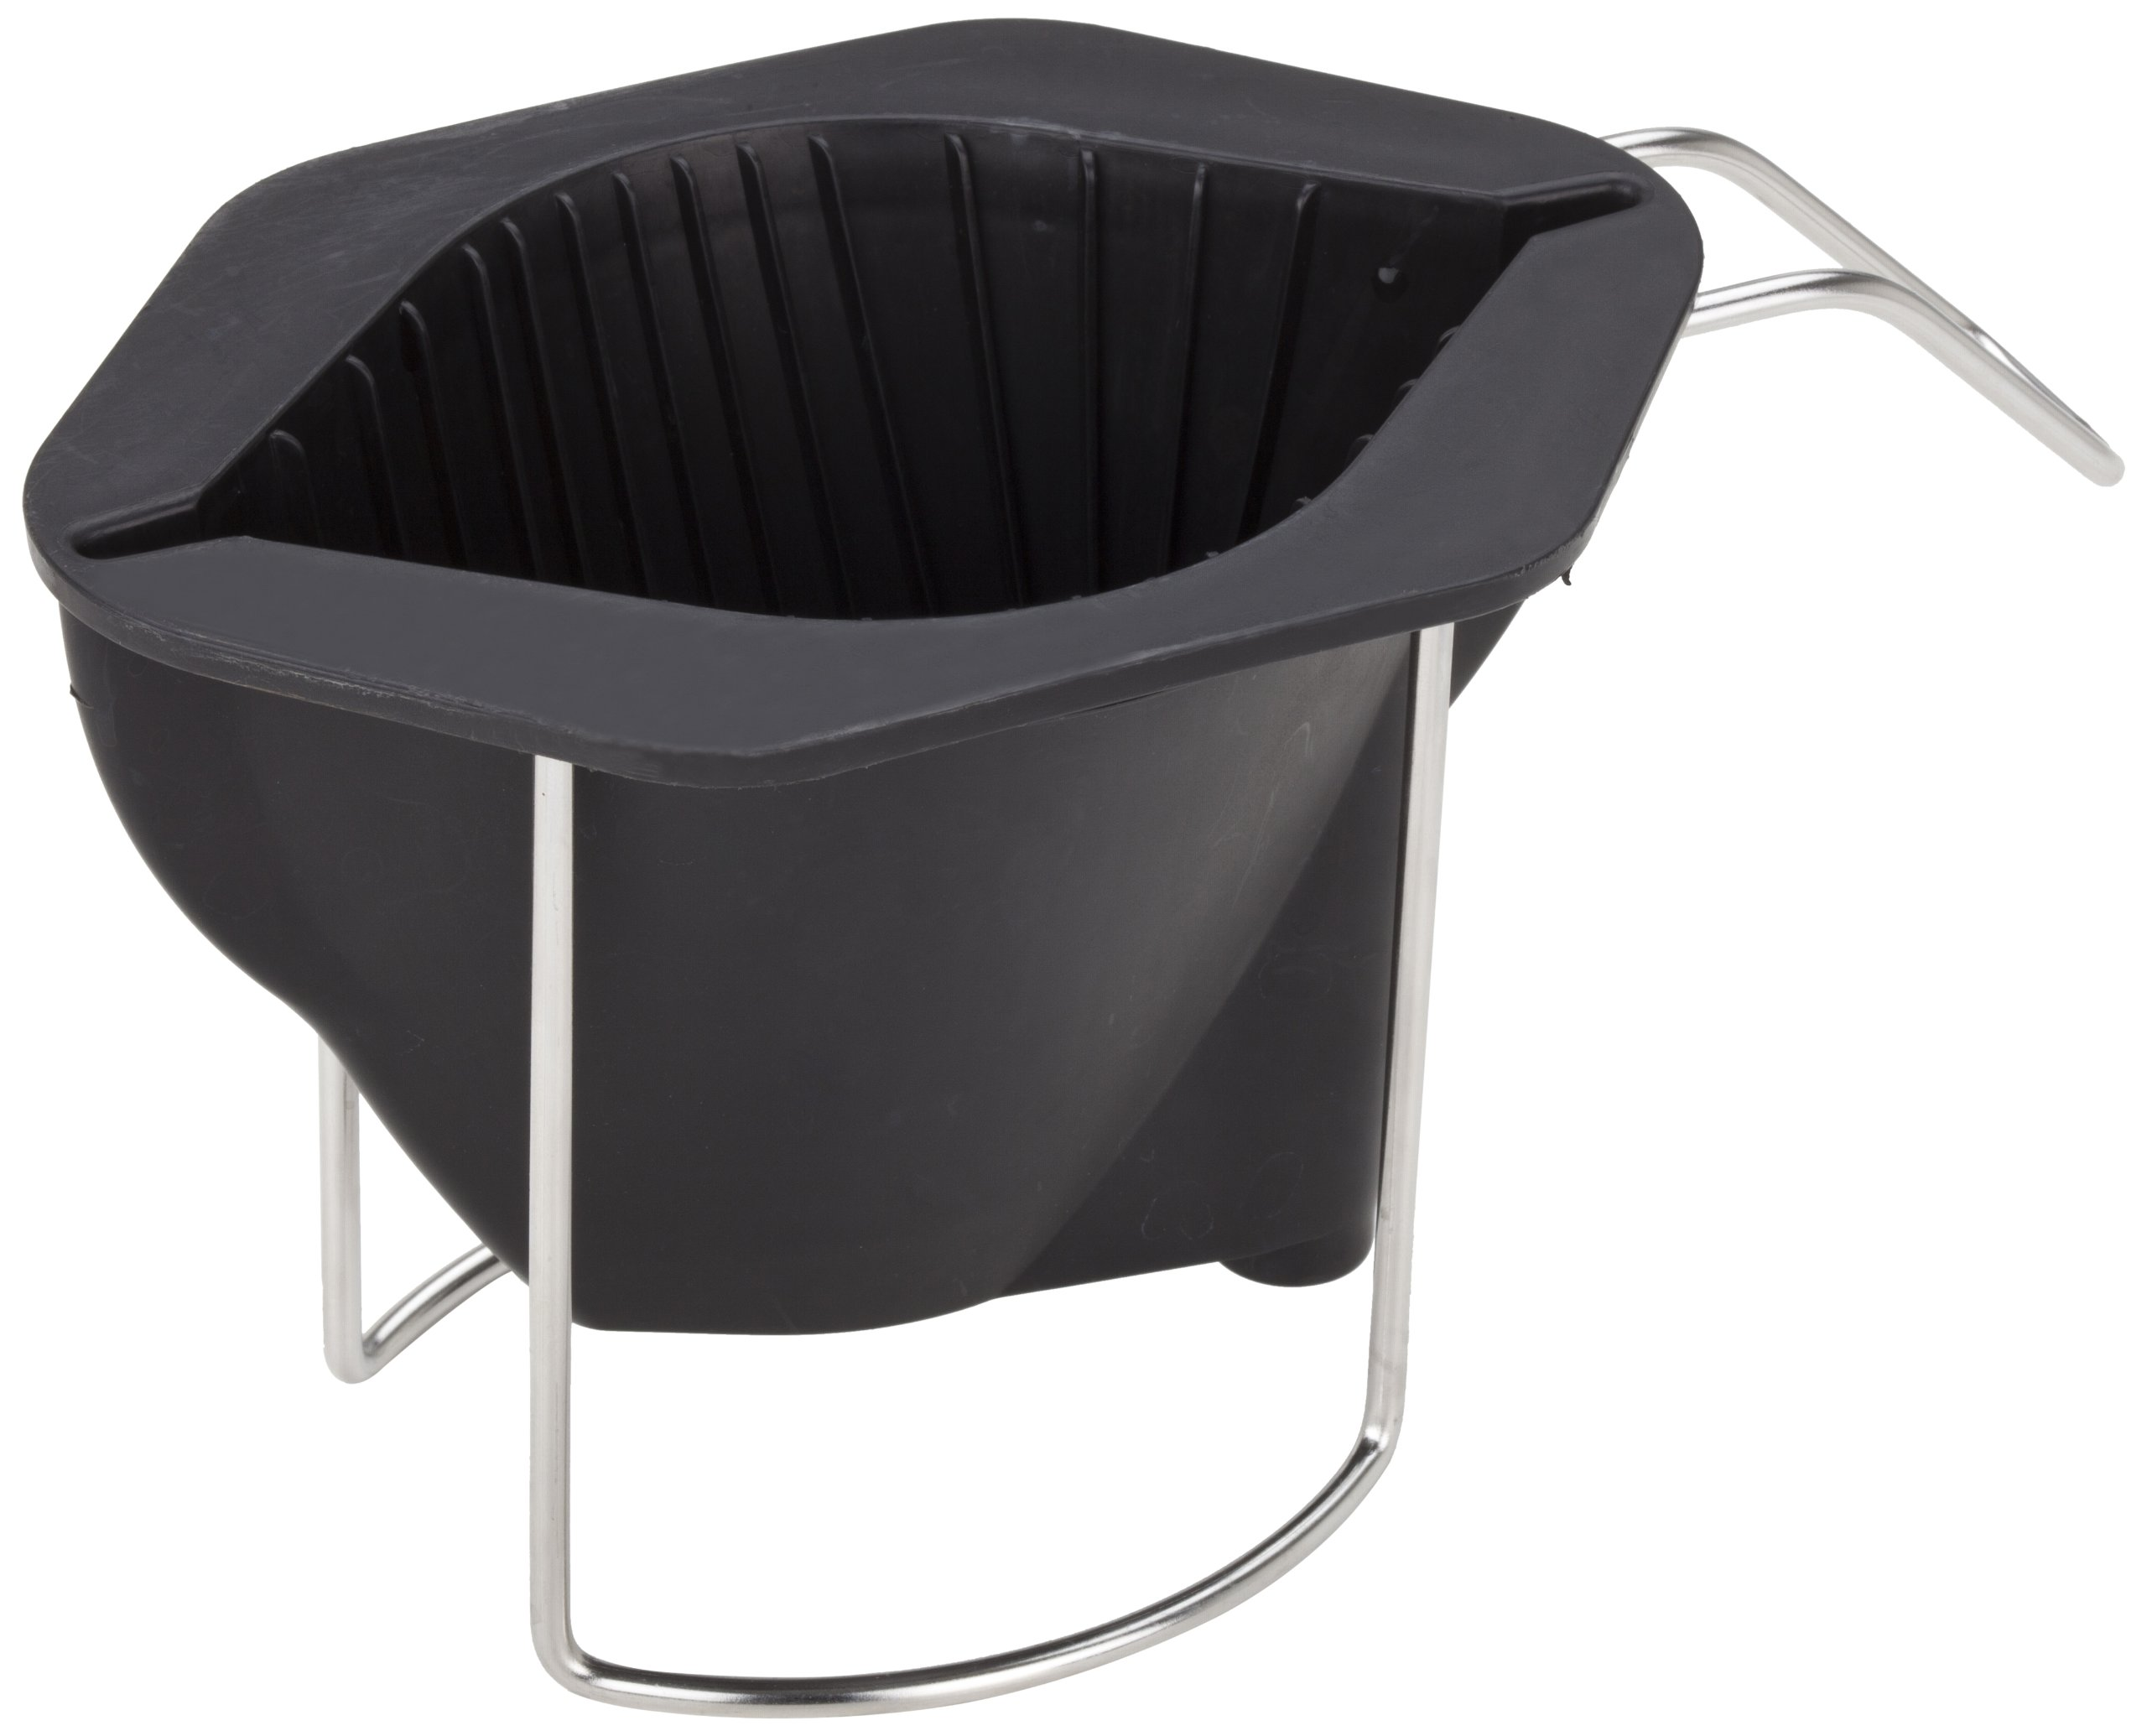 Wilbur Curtis Brew Cone Assembly Non-Metal For CGC - Commercial-Grade Brew Basket - WC-3411 (Each)